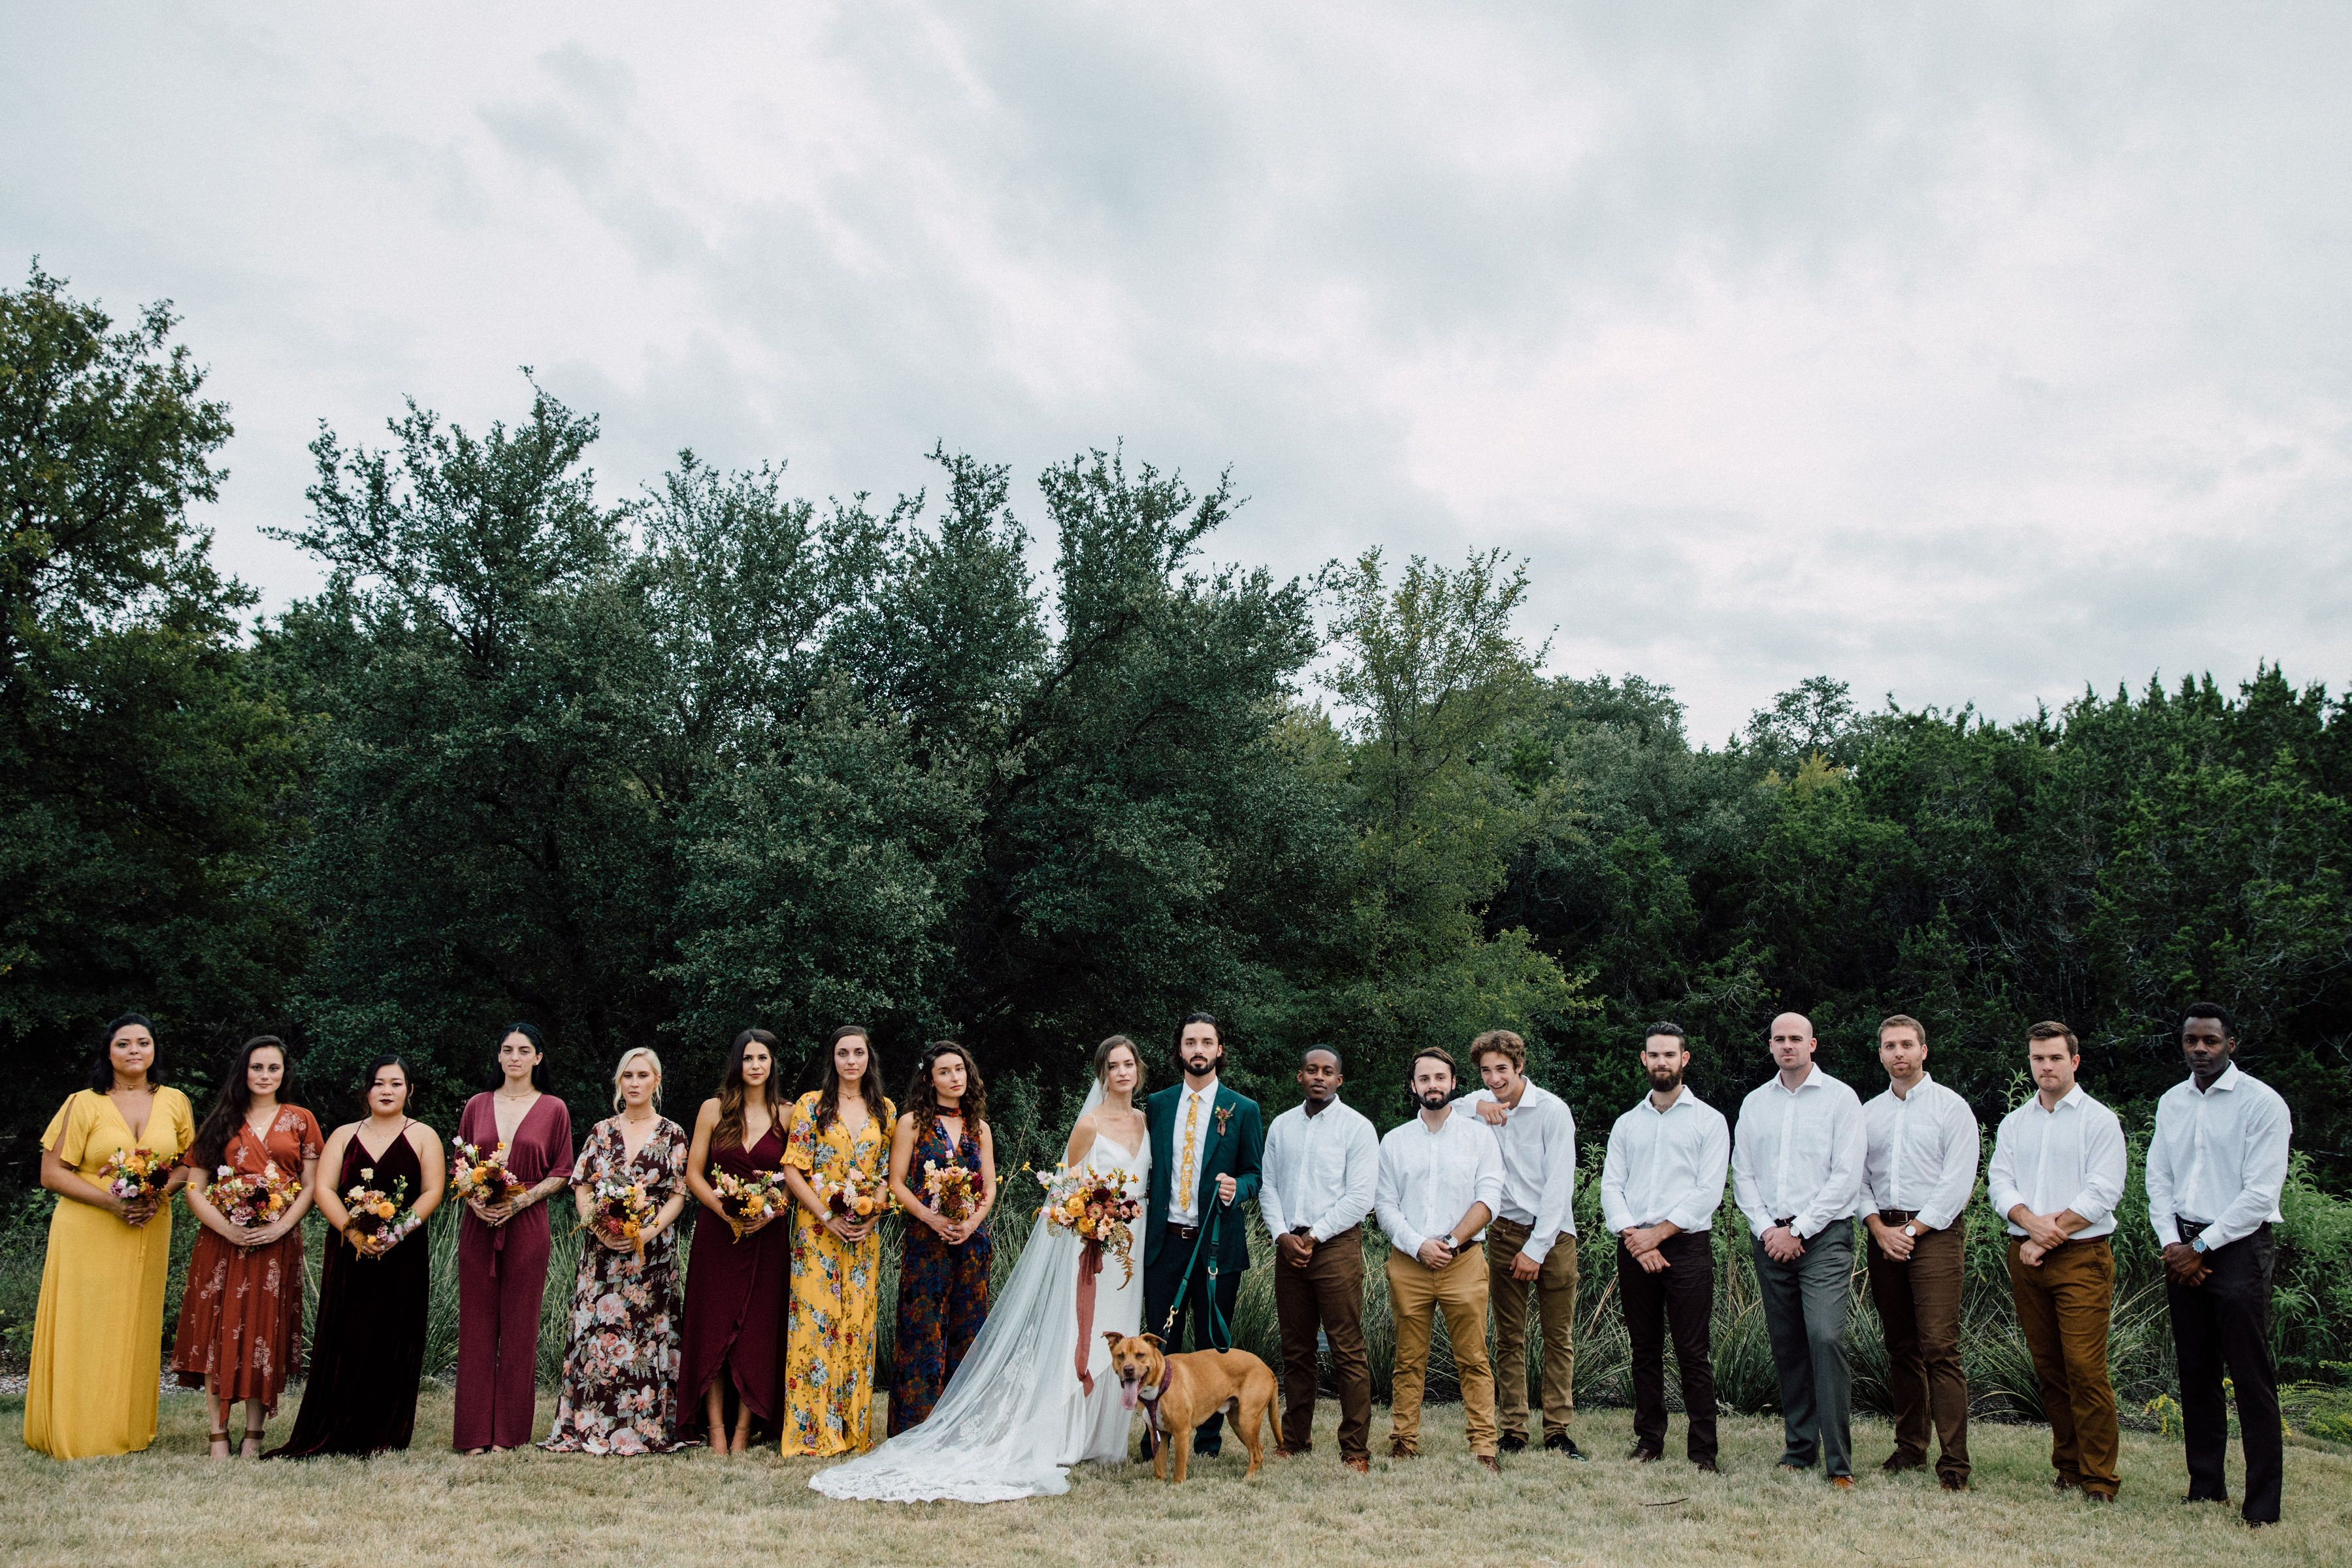 Boho Mismatched Bridal Party In 2020 Bridal Party Mismatched Bridal Party Groomsmen Boho Wedding Groomsmen